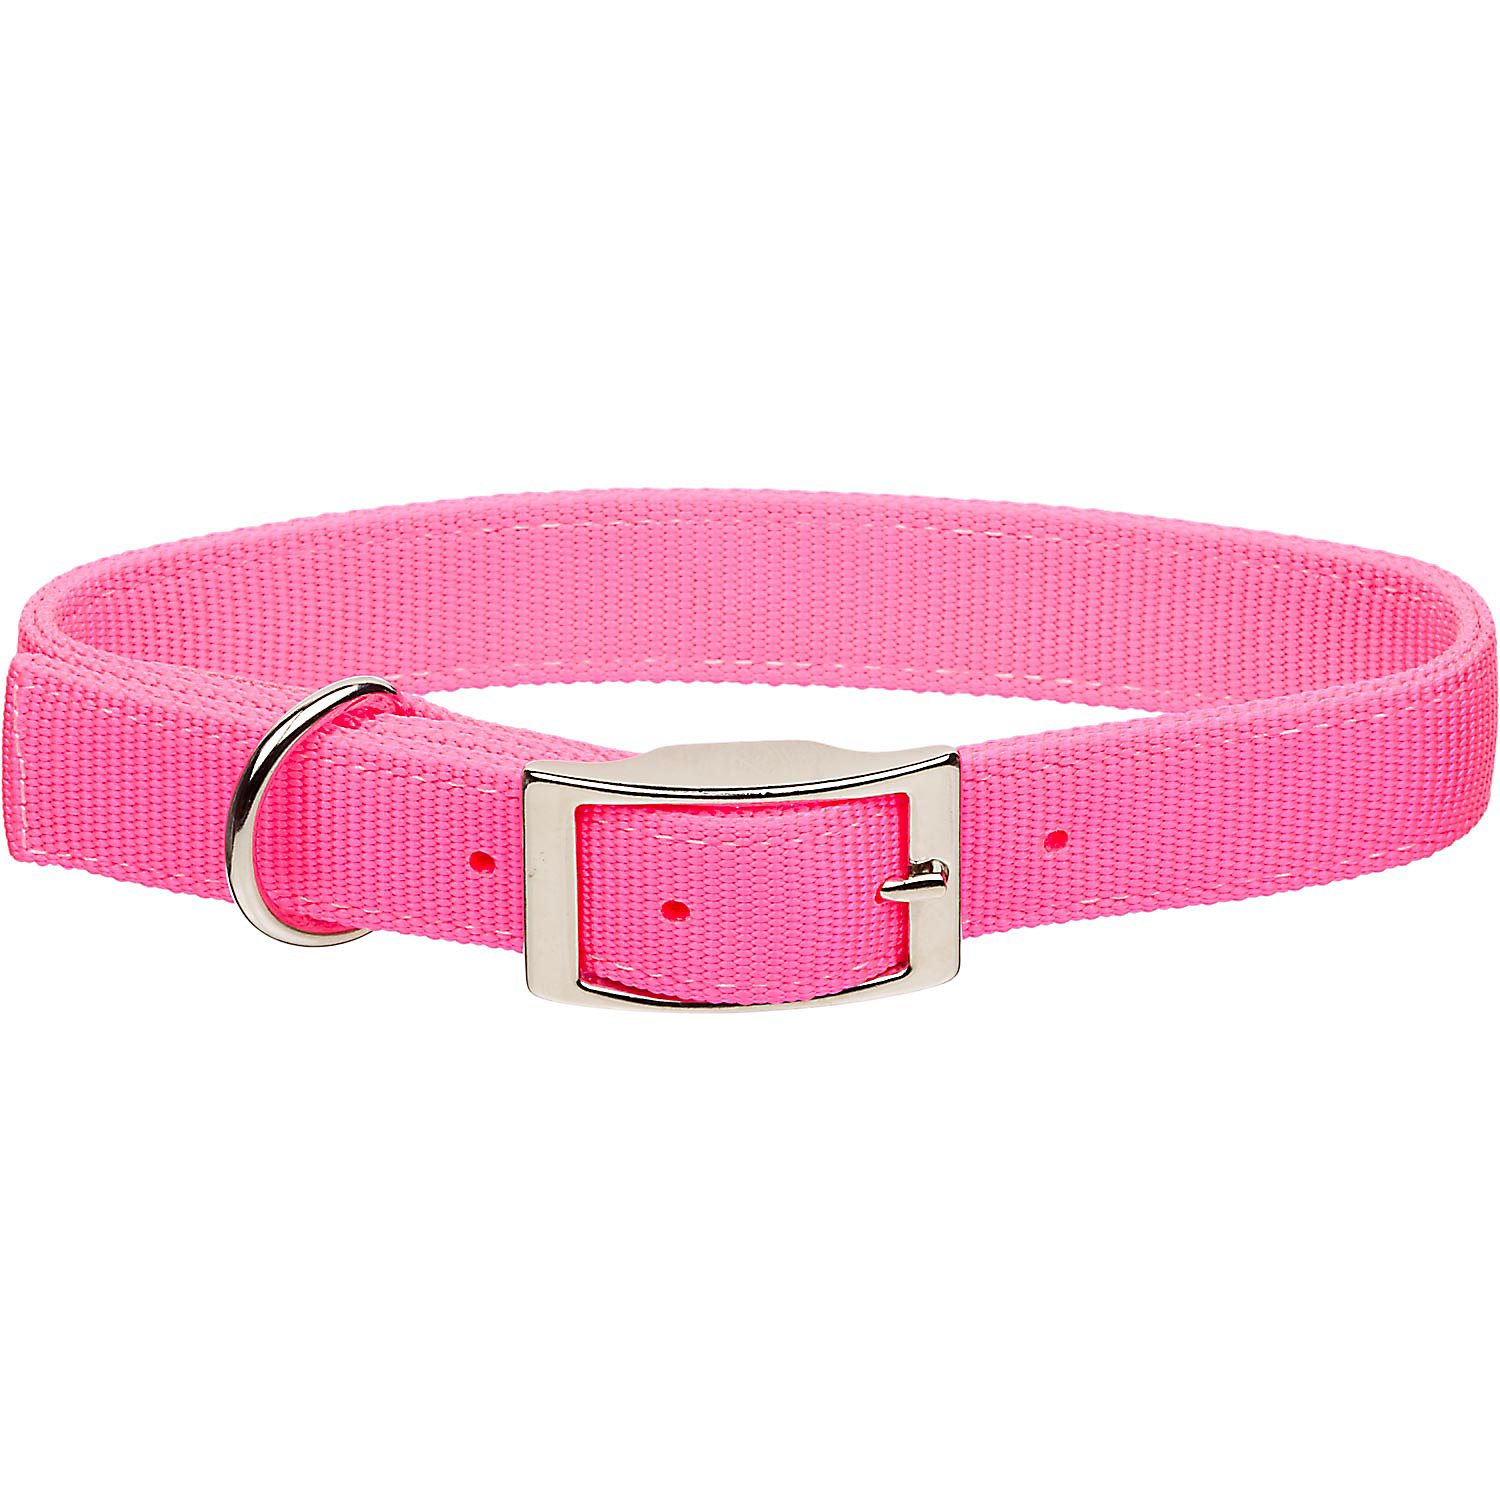 Coastal Pet Metal Buckle Double Ply Nylon Personalized Dog Collar in Neon Pink, 1